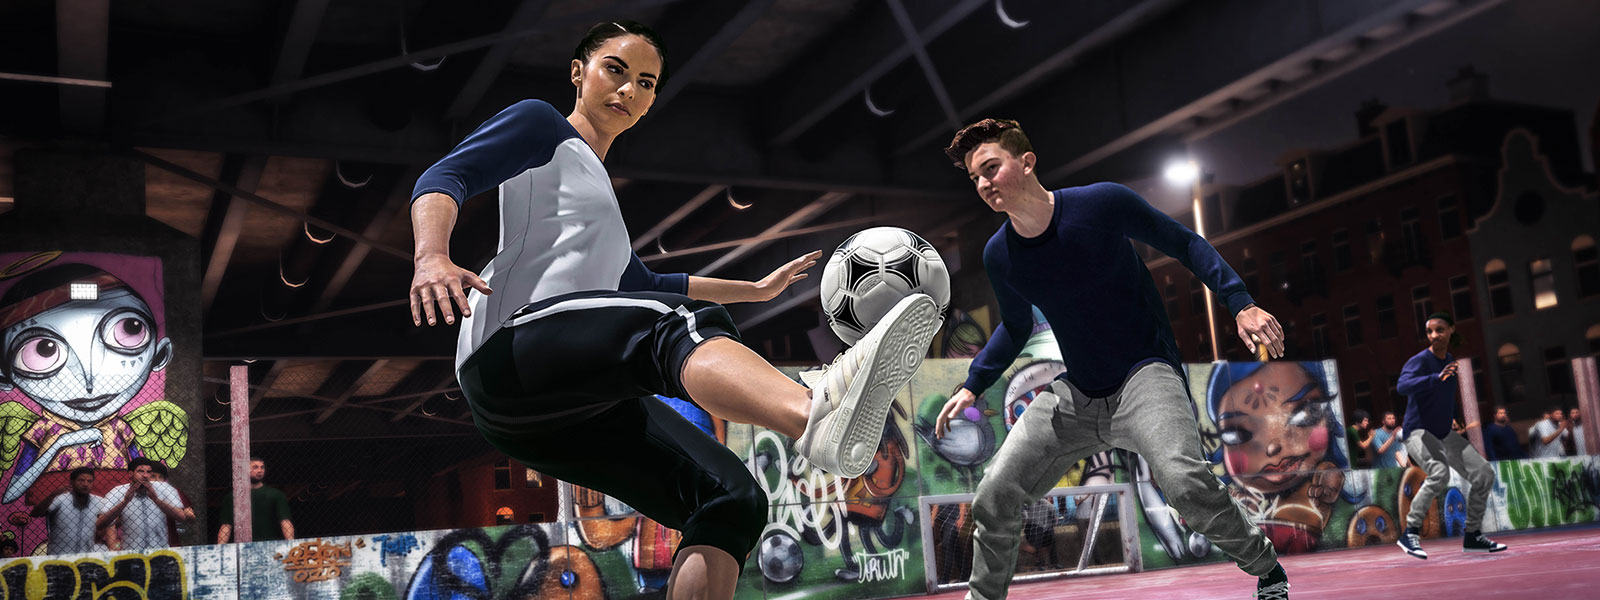 Two characters playing street soccer